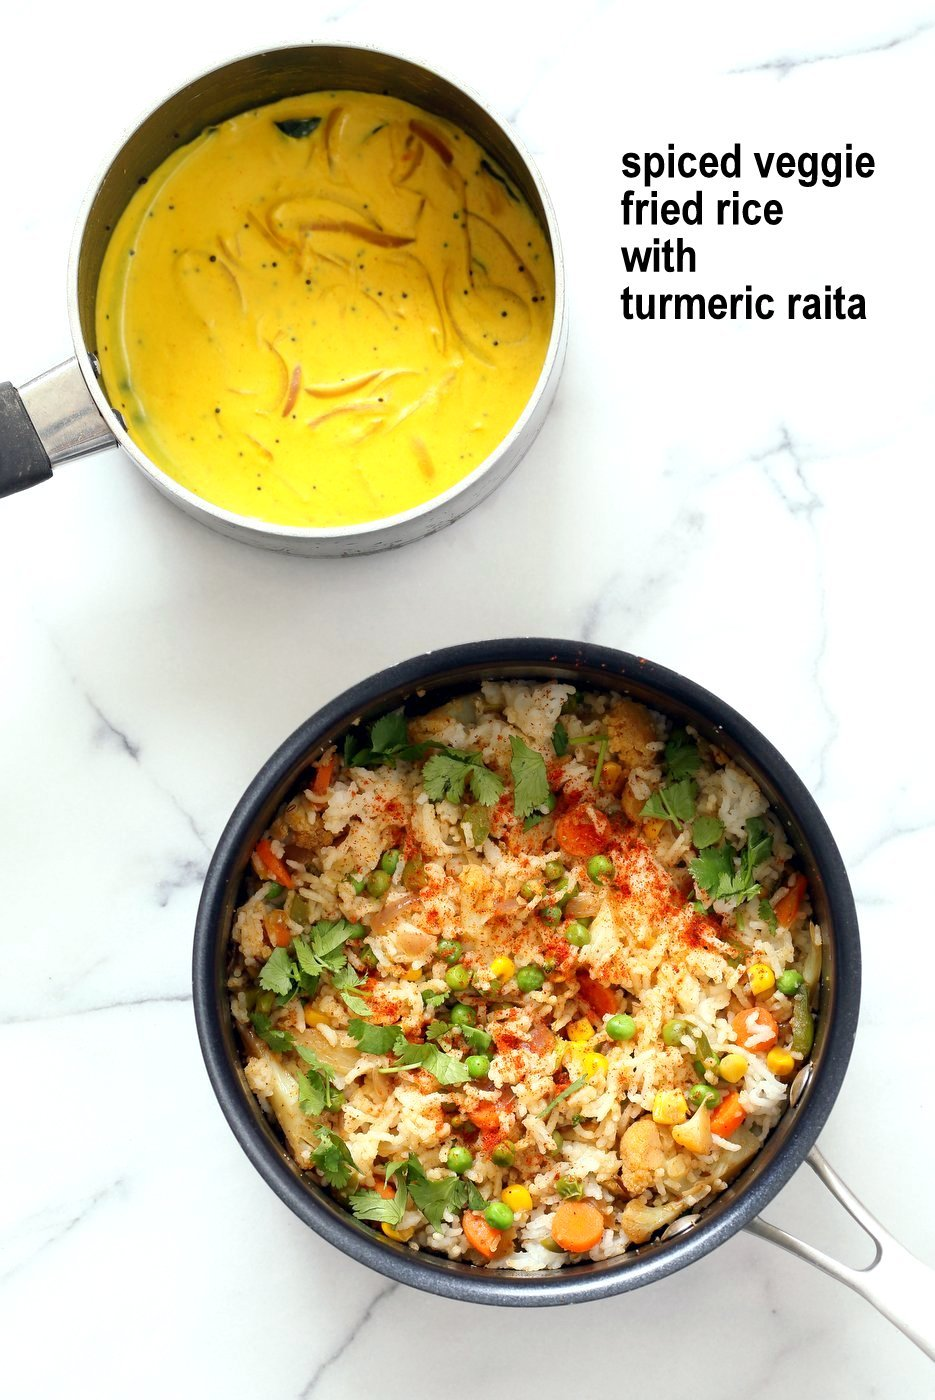 Indian Spiced Masala Veggie Fried Rice with Turmeric Onion Raita. Use up the leftover rice or grains to make this quick spiced fried rice and serve with a simple yogurt raita that is spiced with turmeric and mustard seeds. Vegan Gluten-free Soy-free Indian Recipe | VeganRicha.com